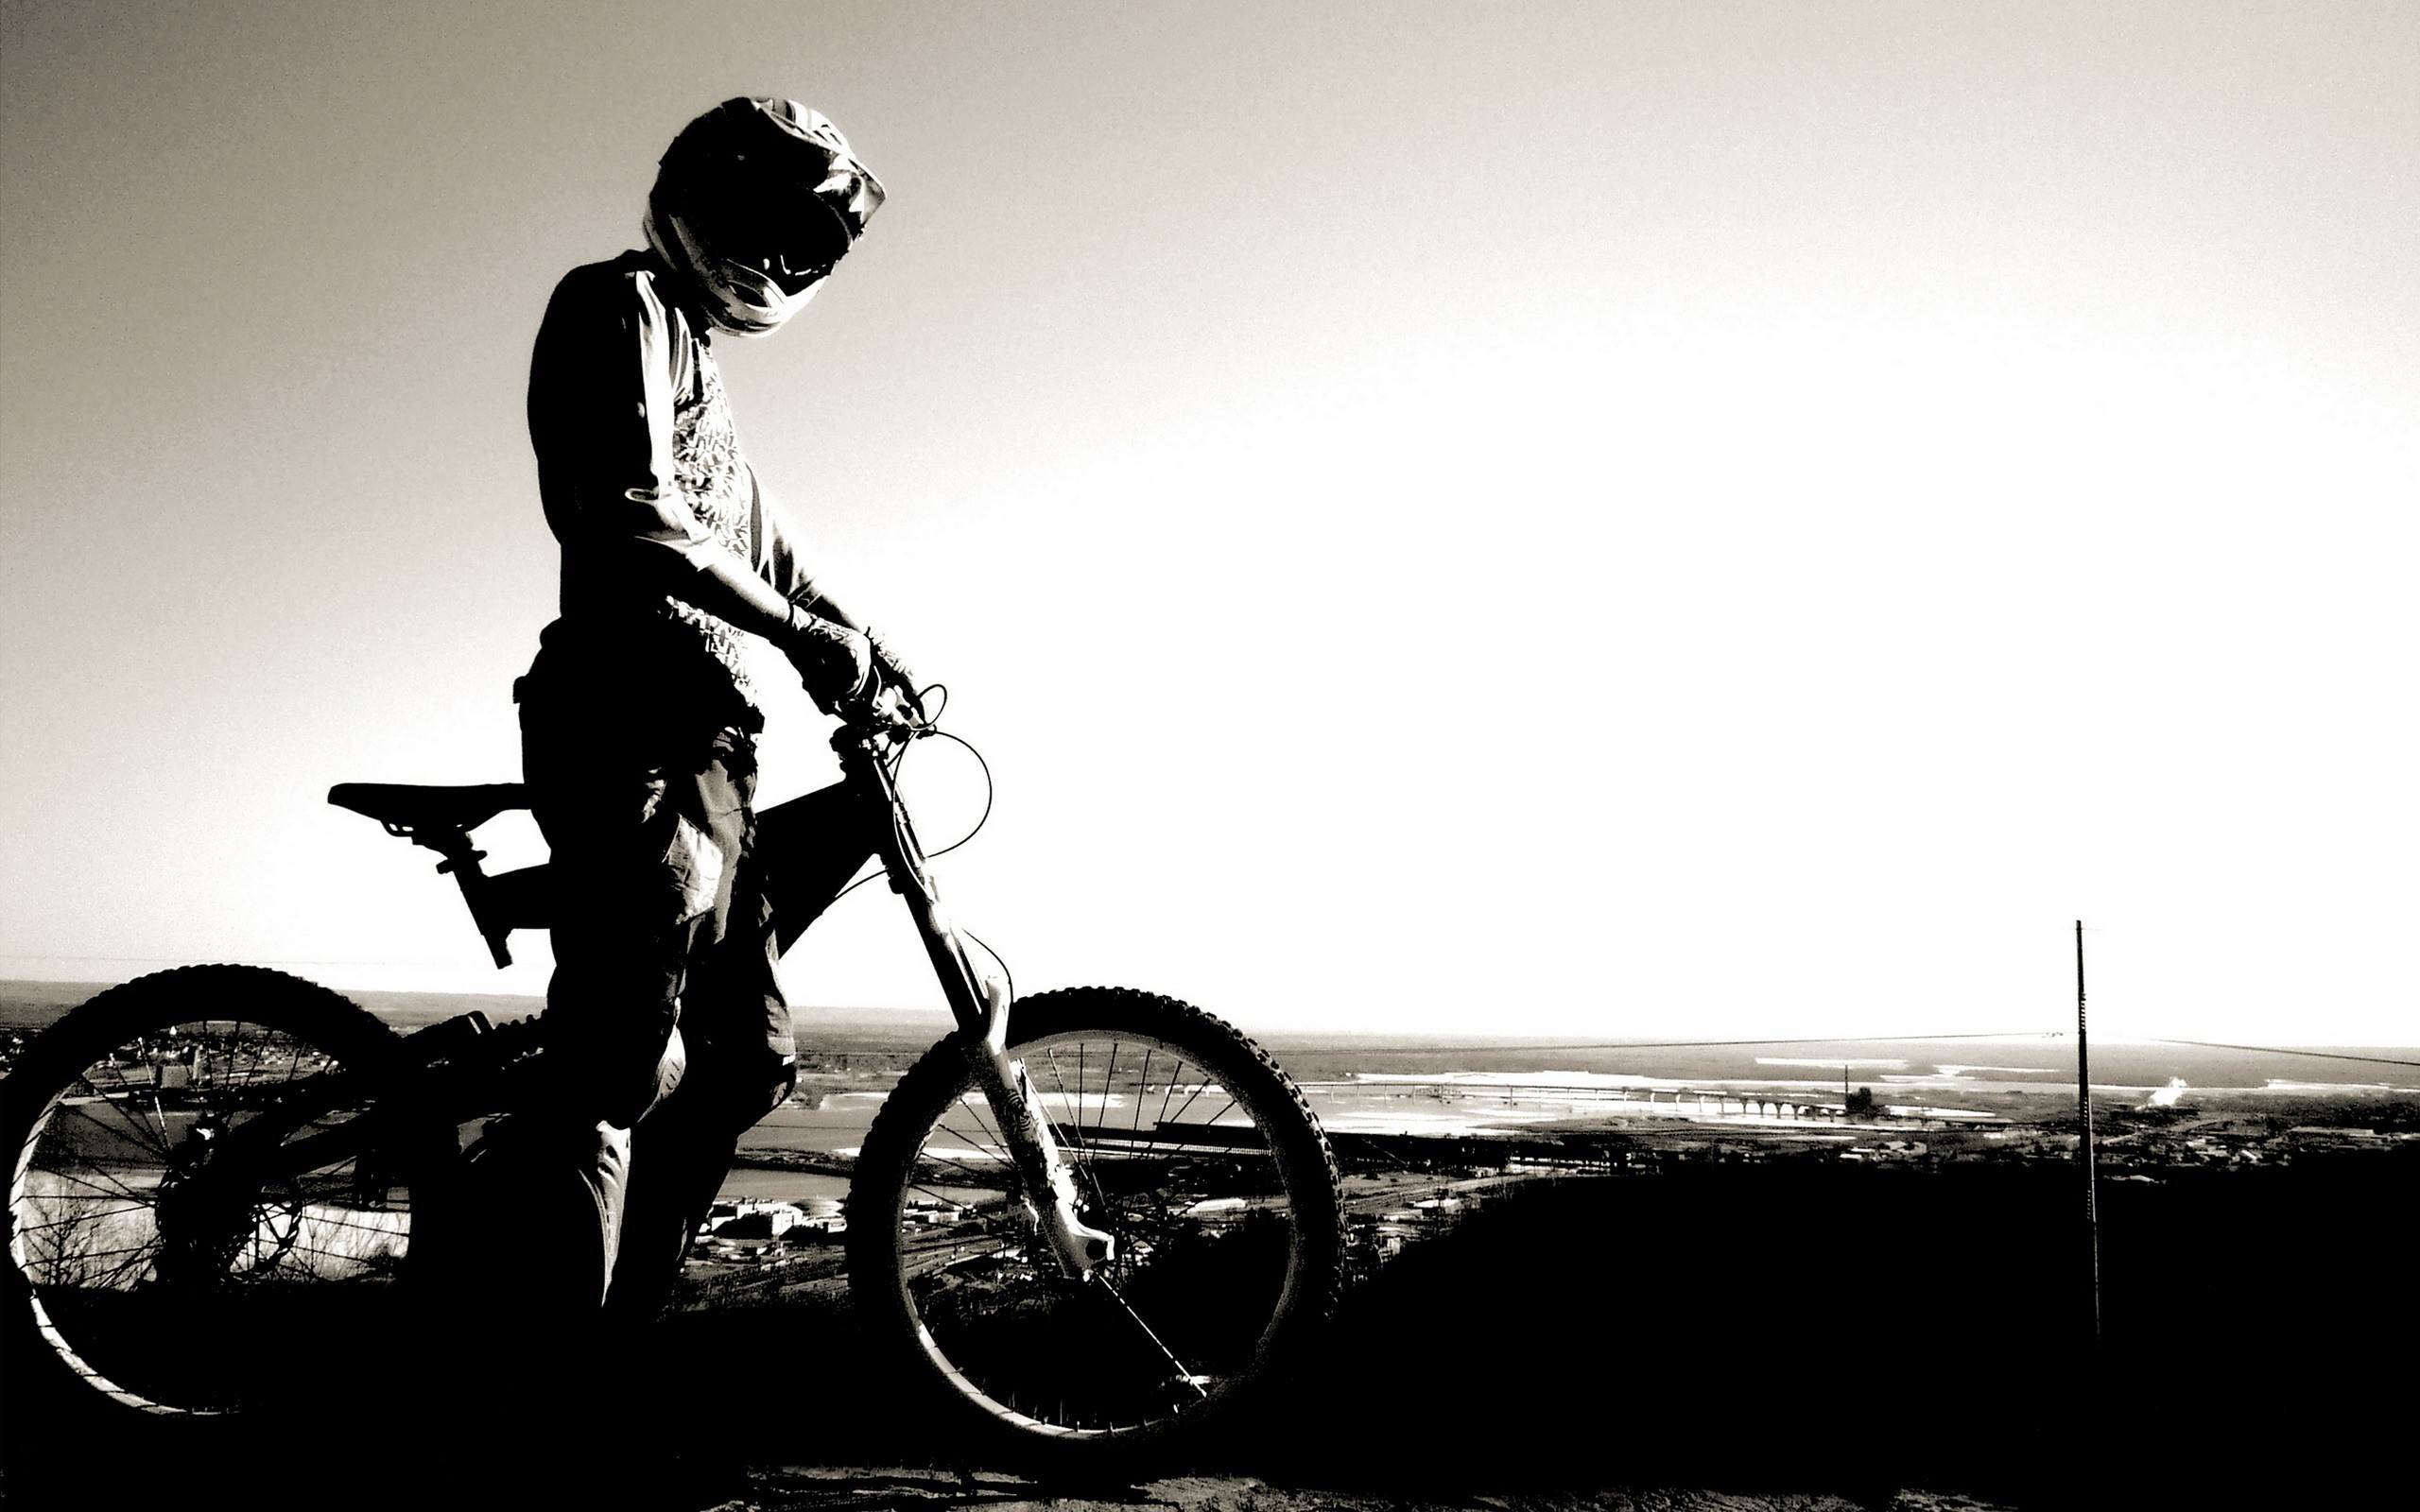 Bicycles monochrome HD Wallpaper